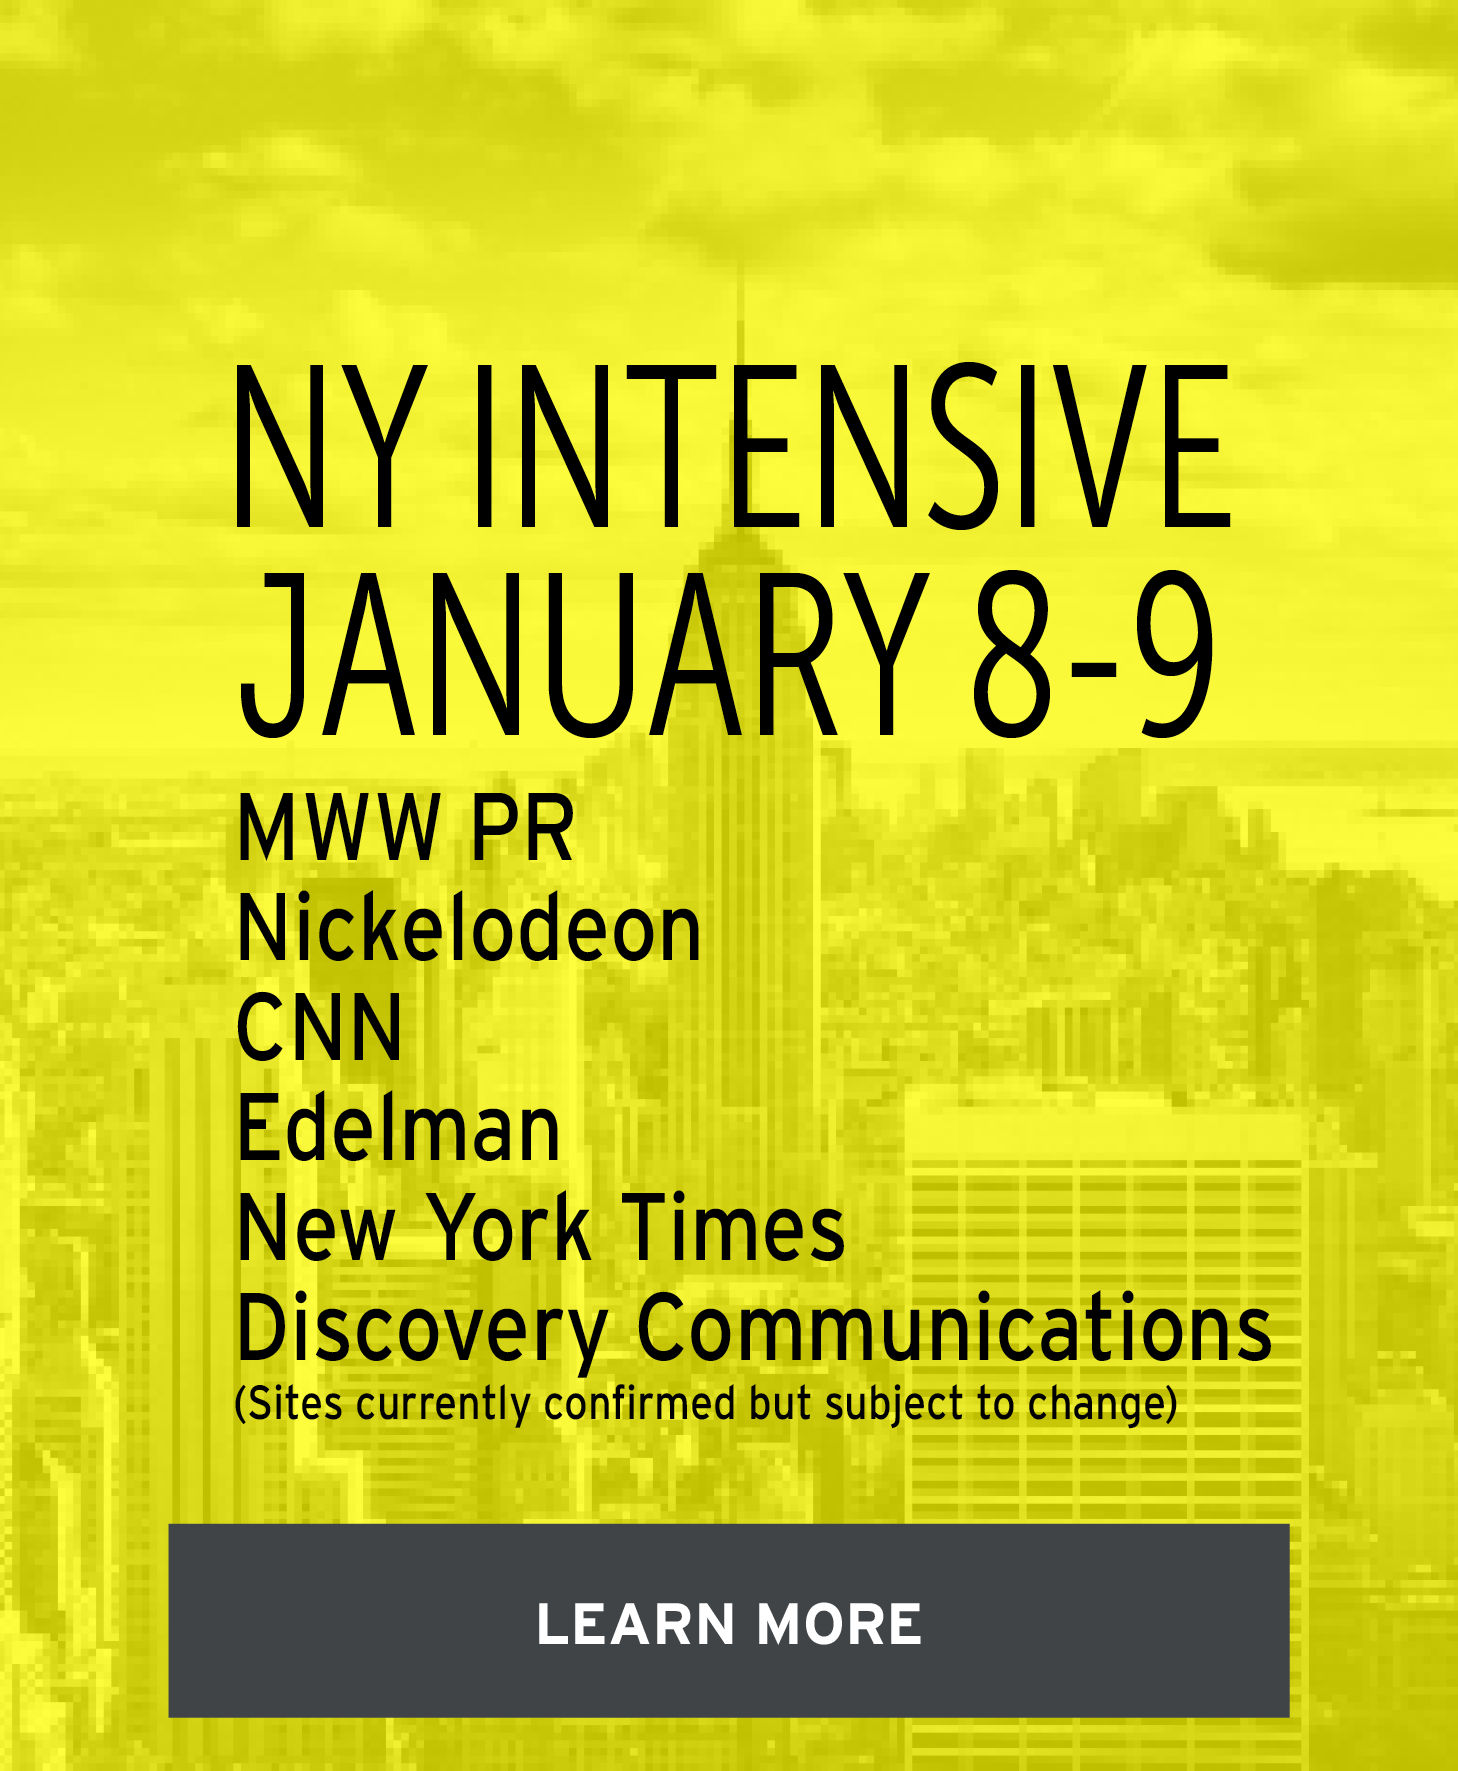 NY Intensive, January 8-9, MWW PR, Nickelodeon, CNN, Edelman, New York Times, Discovery Communications (Sites currently confirmed but subject to change), Click to learn more